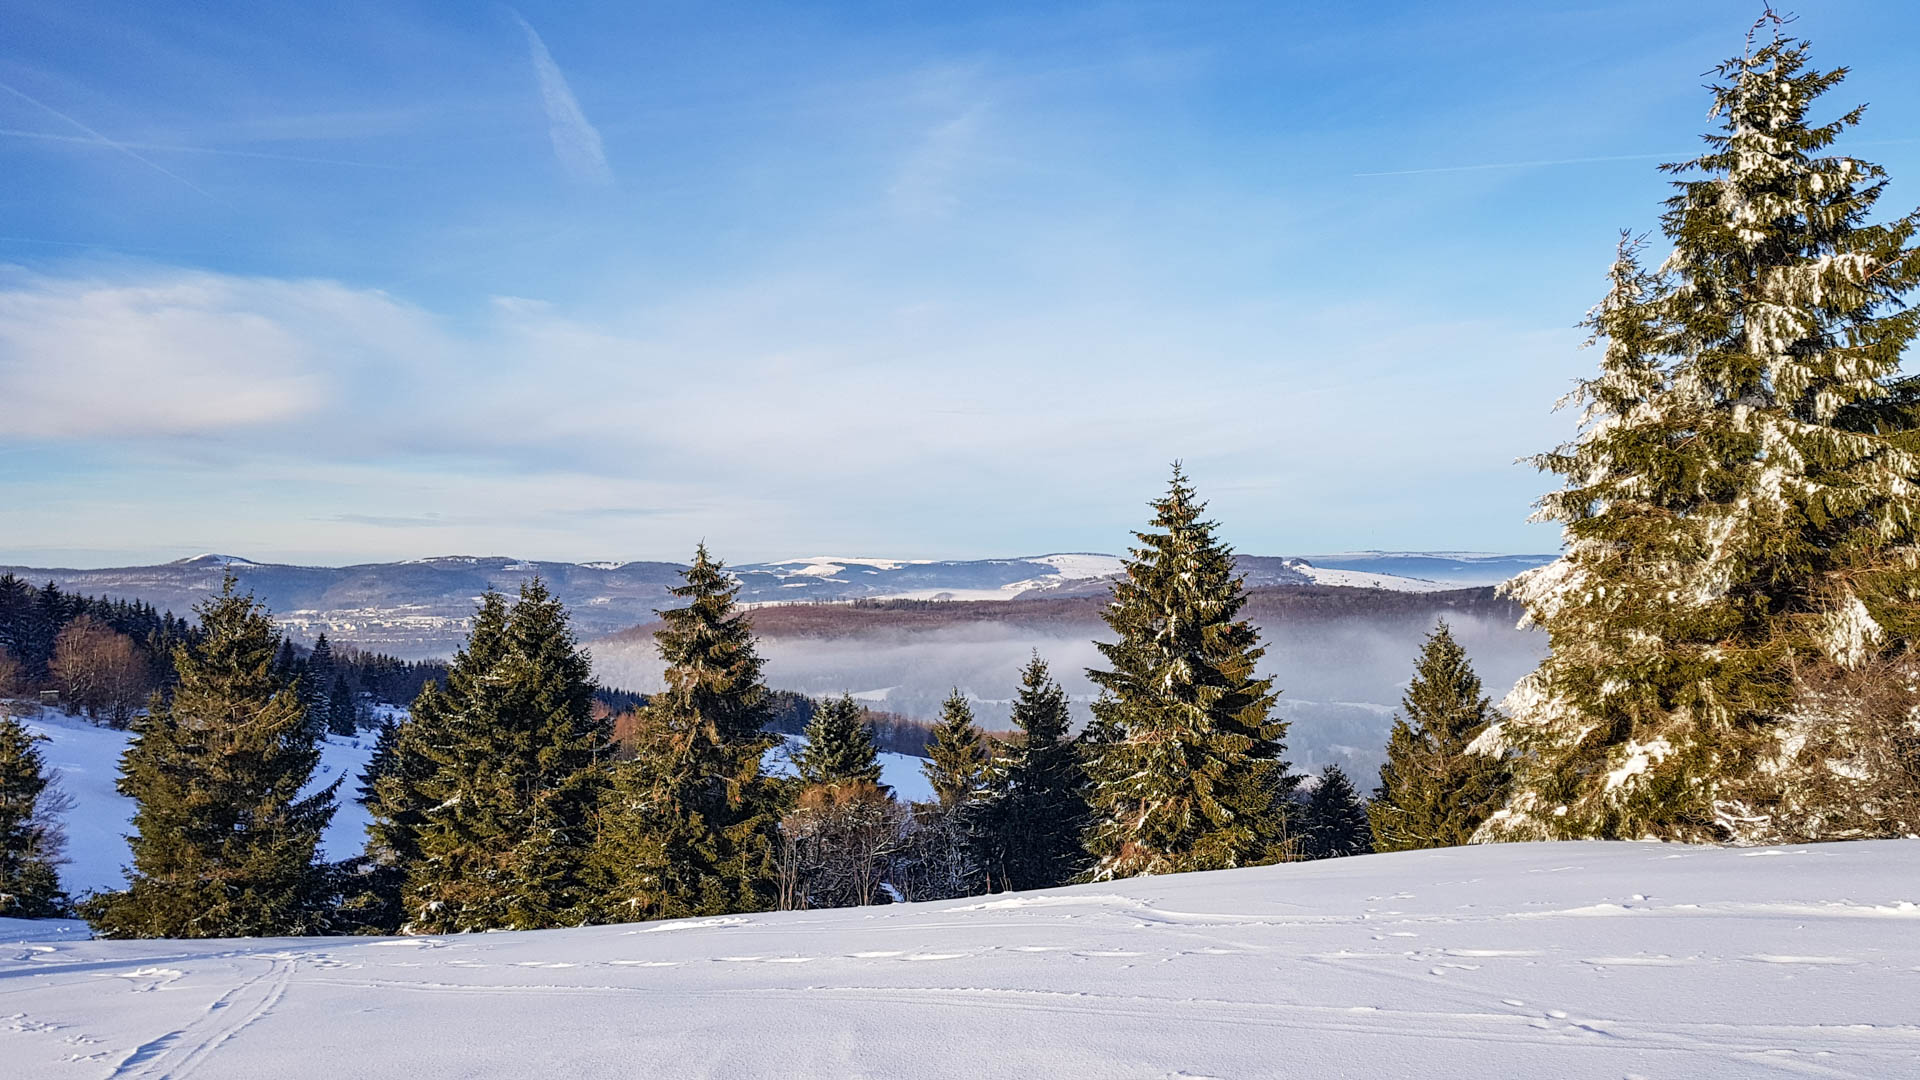 Feuerberg_Winter_2019-02-06-149